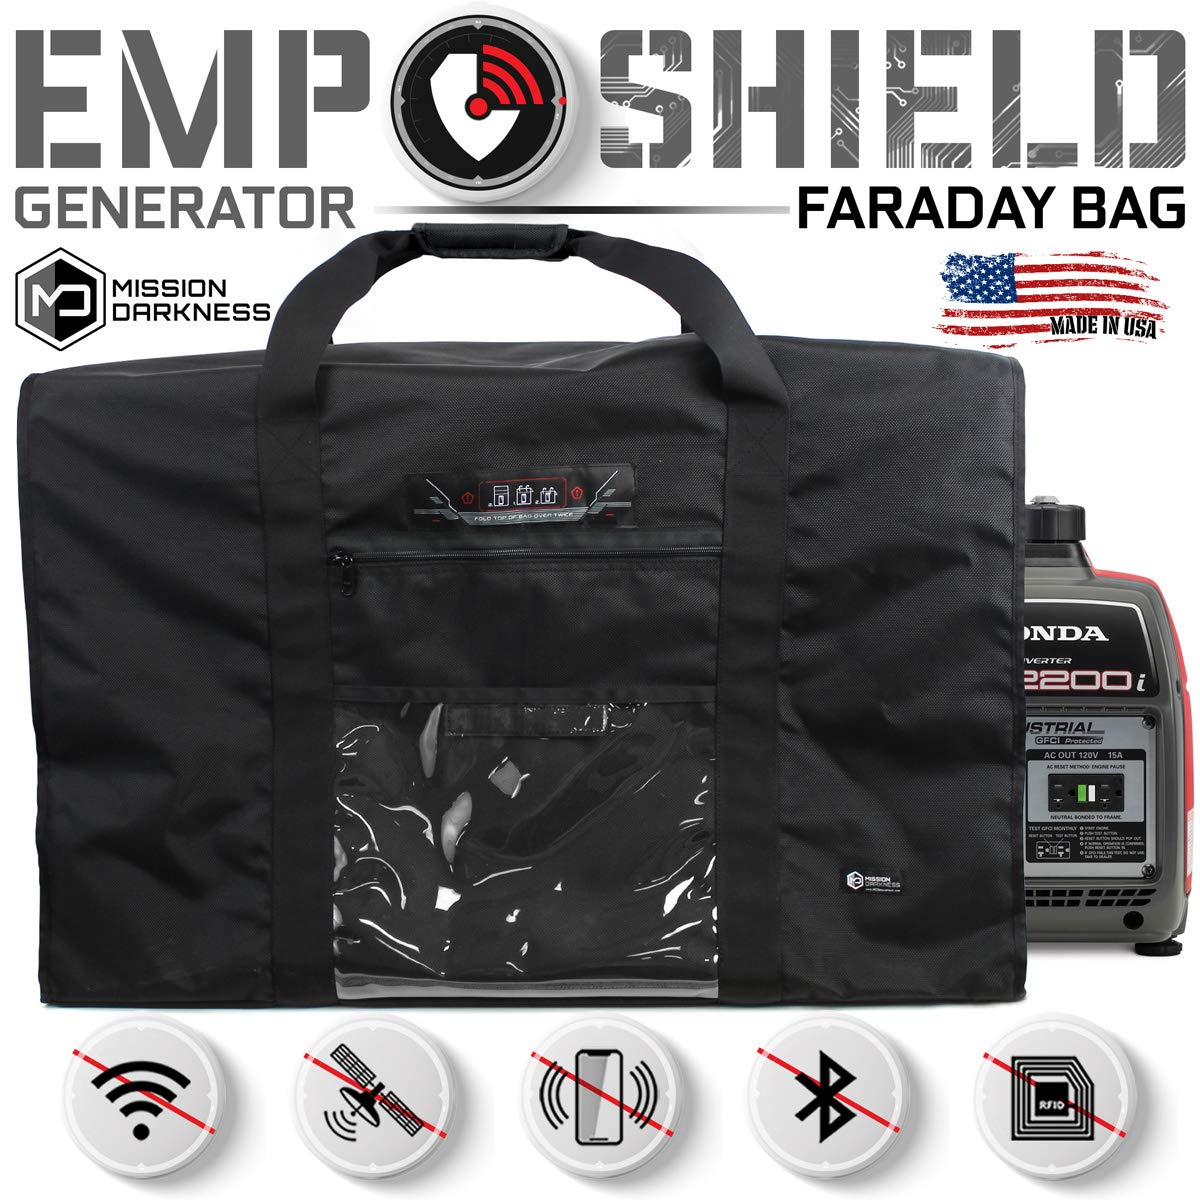 Mission Darkness Revelation EMP Shield for Generators and Extra-Large Electronics. Military-Grade Faraday Bag Designed for EMP/CME Protection, Forensic Investigators, preppers, and Personal Security by Mission Darkness